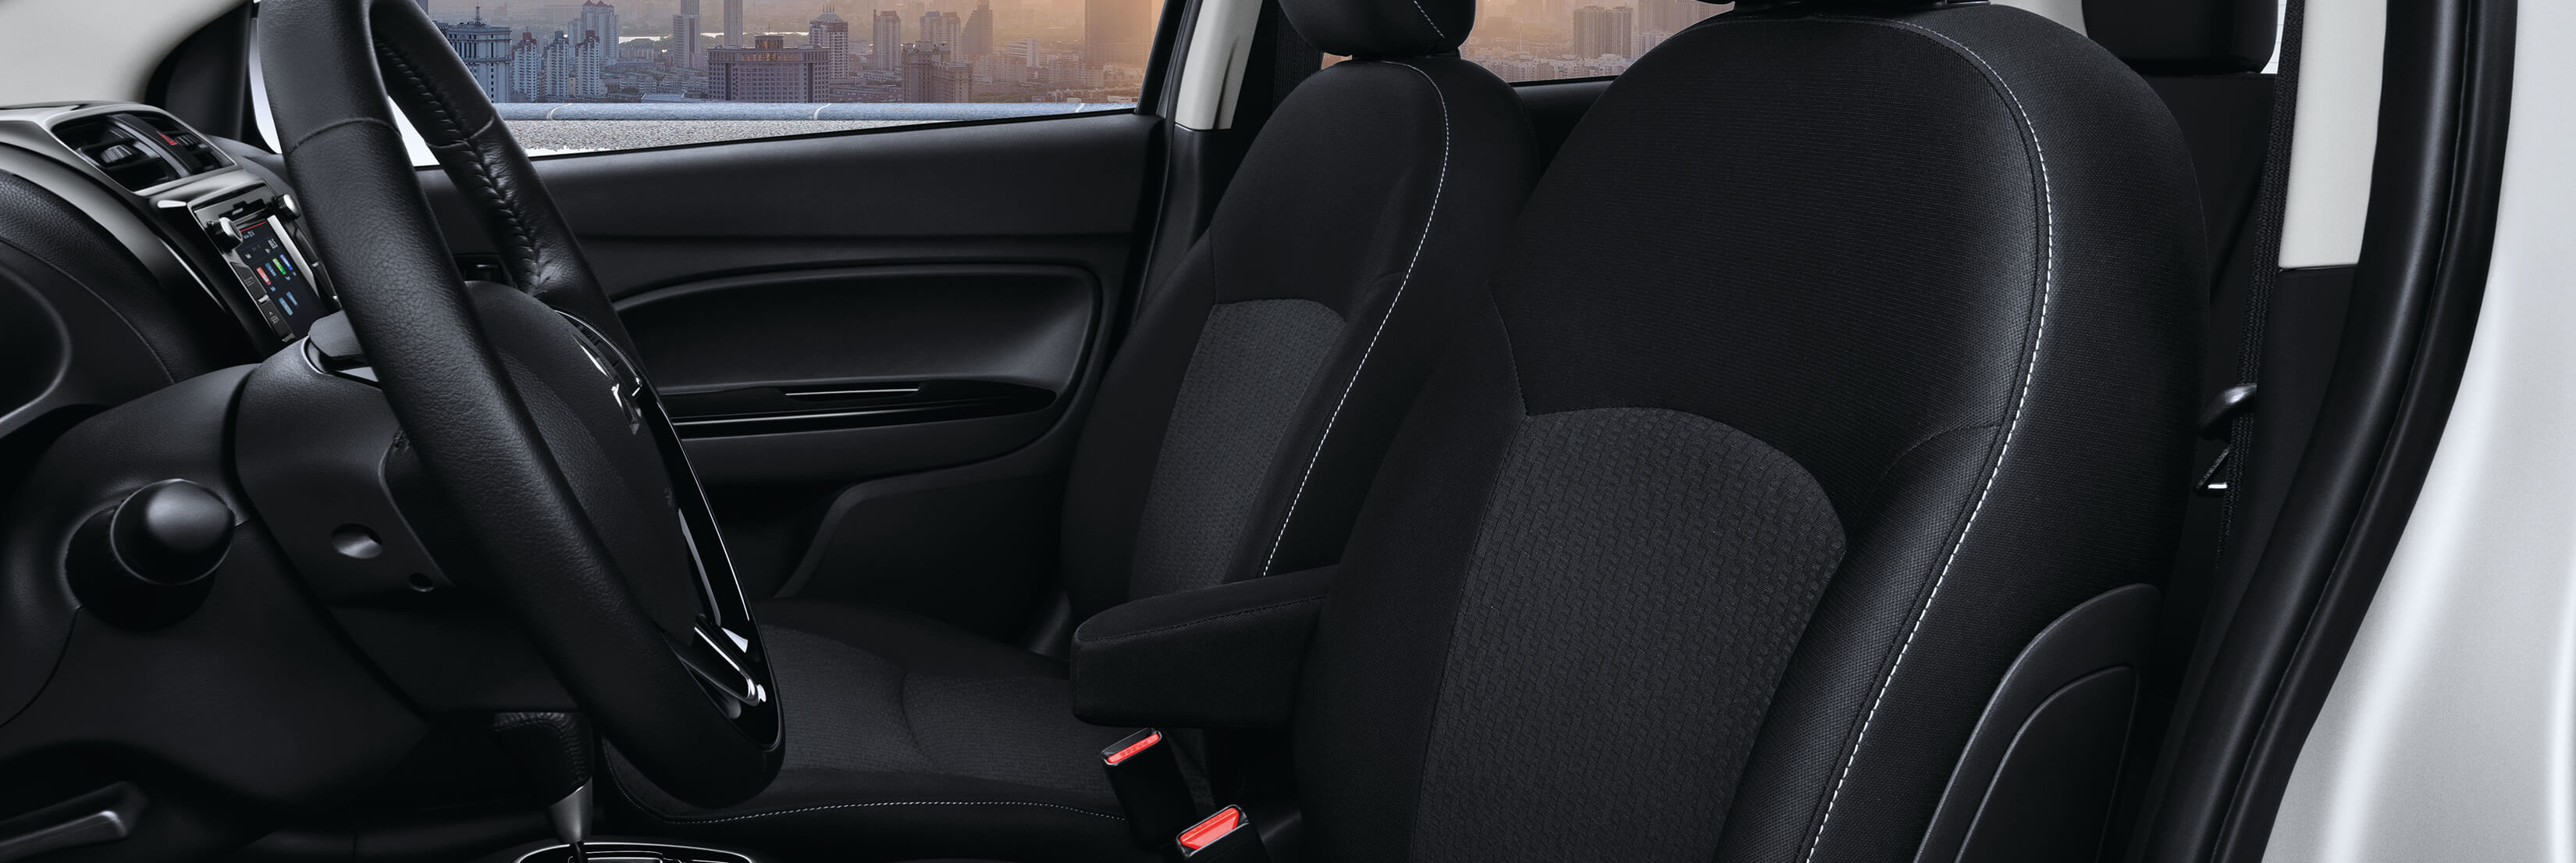 Side profile of front interior of a Mitsubishi Mirage w